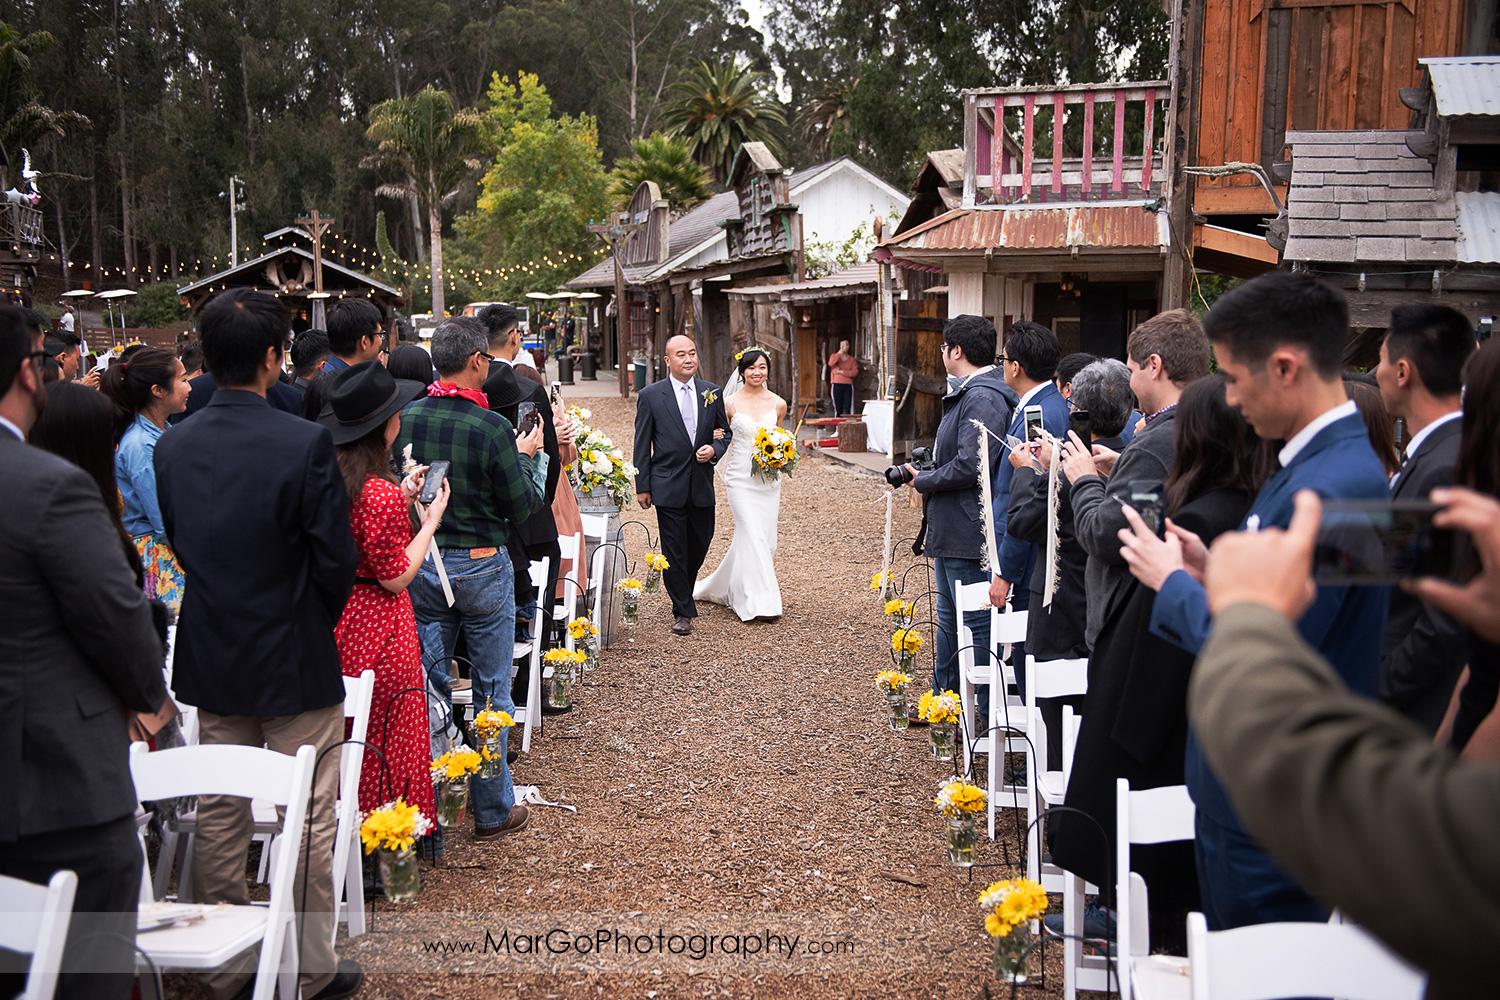 bride walking down the aisle with her father during wedding ceremony at Long Branch Saloon & Farms in Half Moon Bay